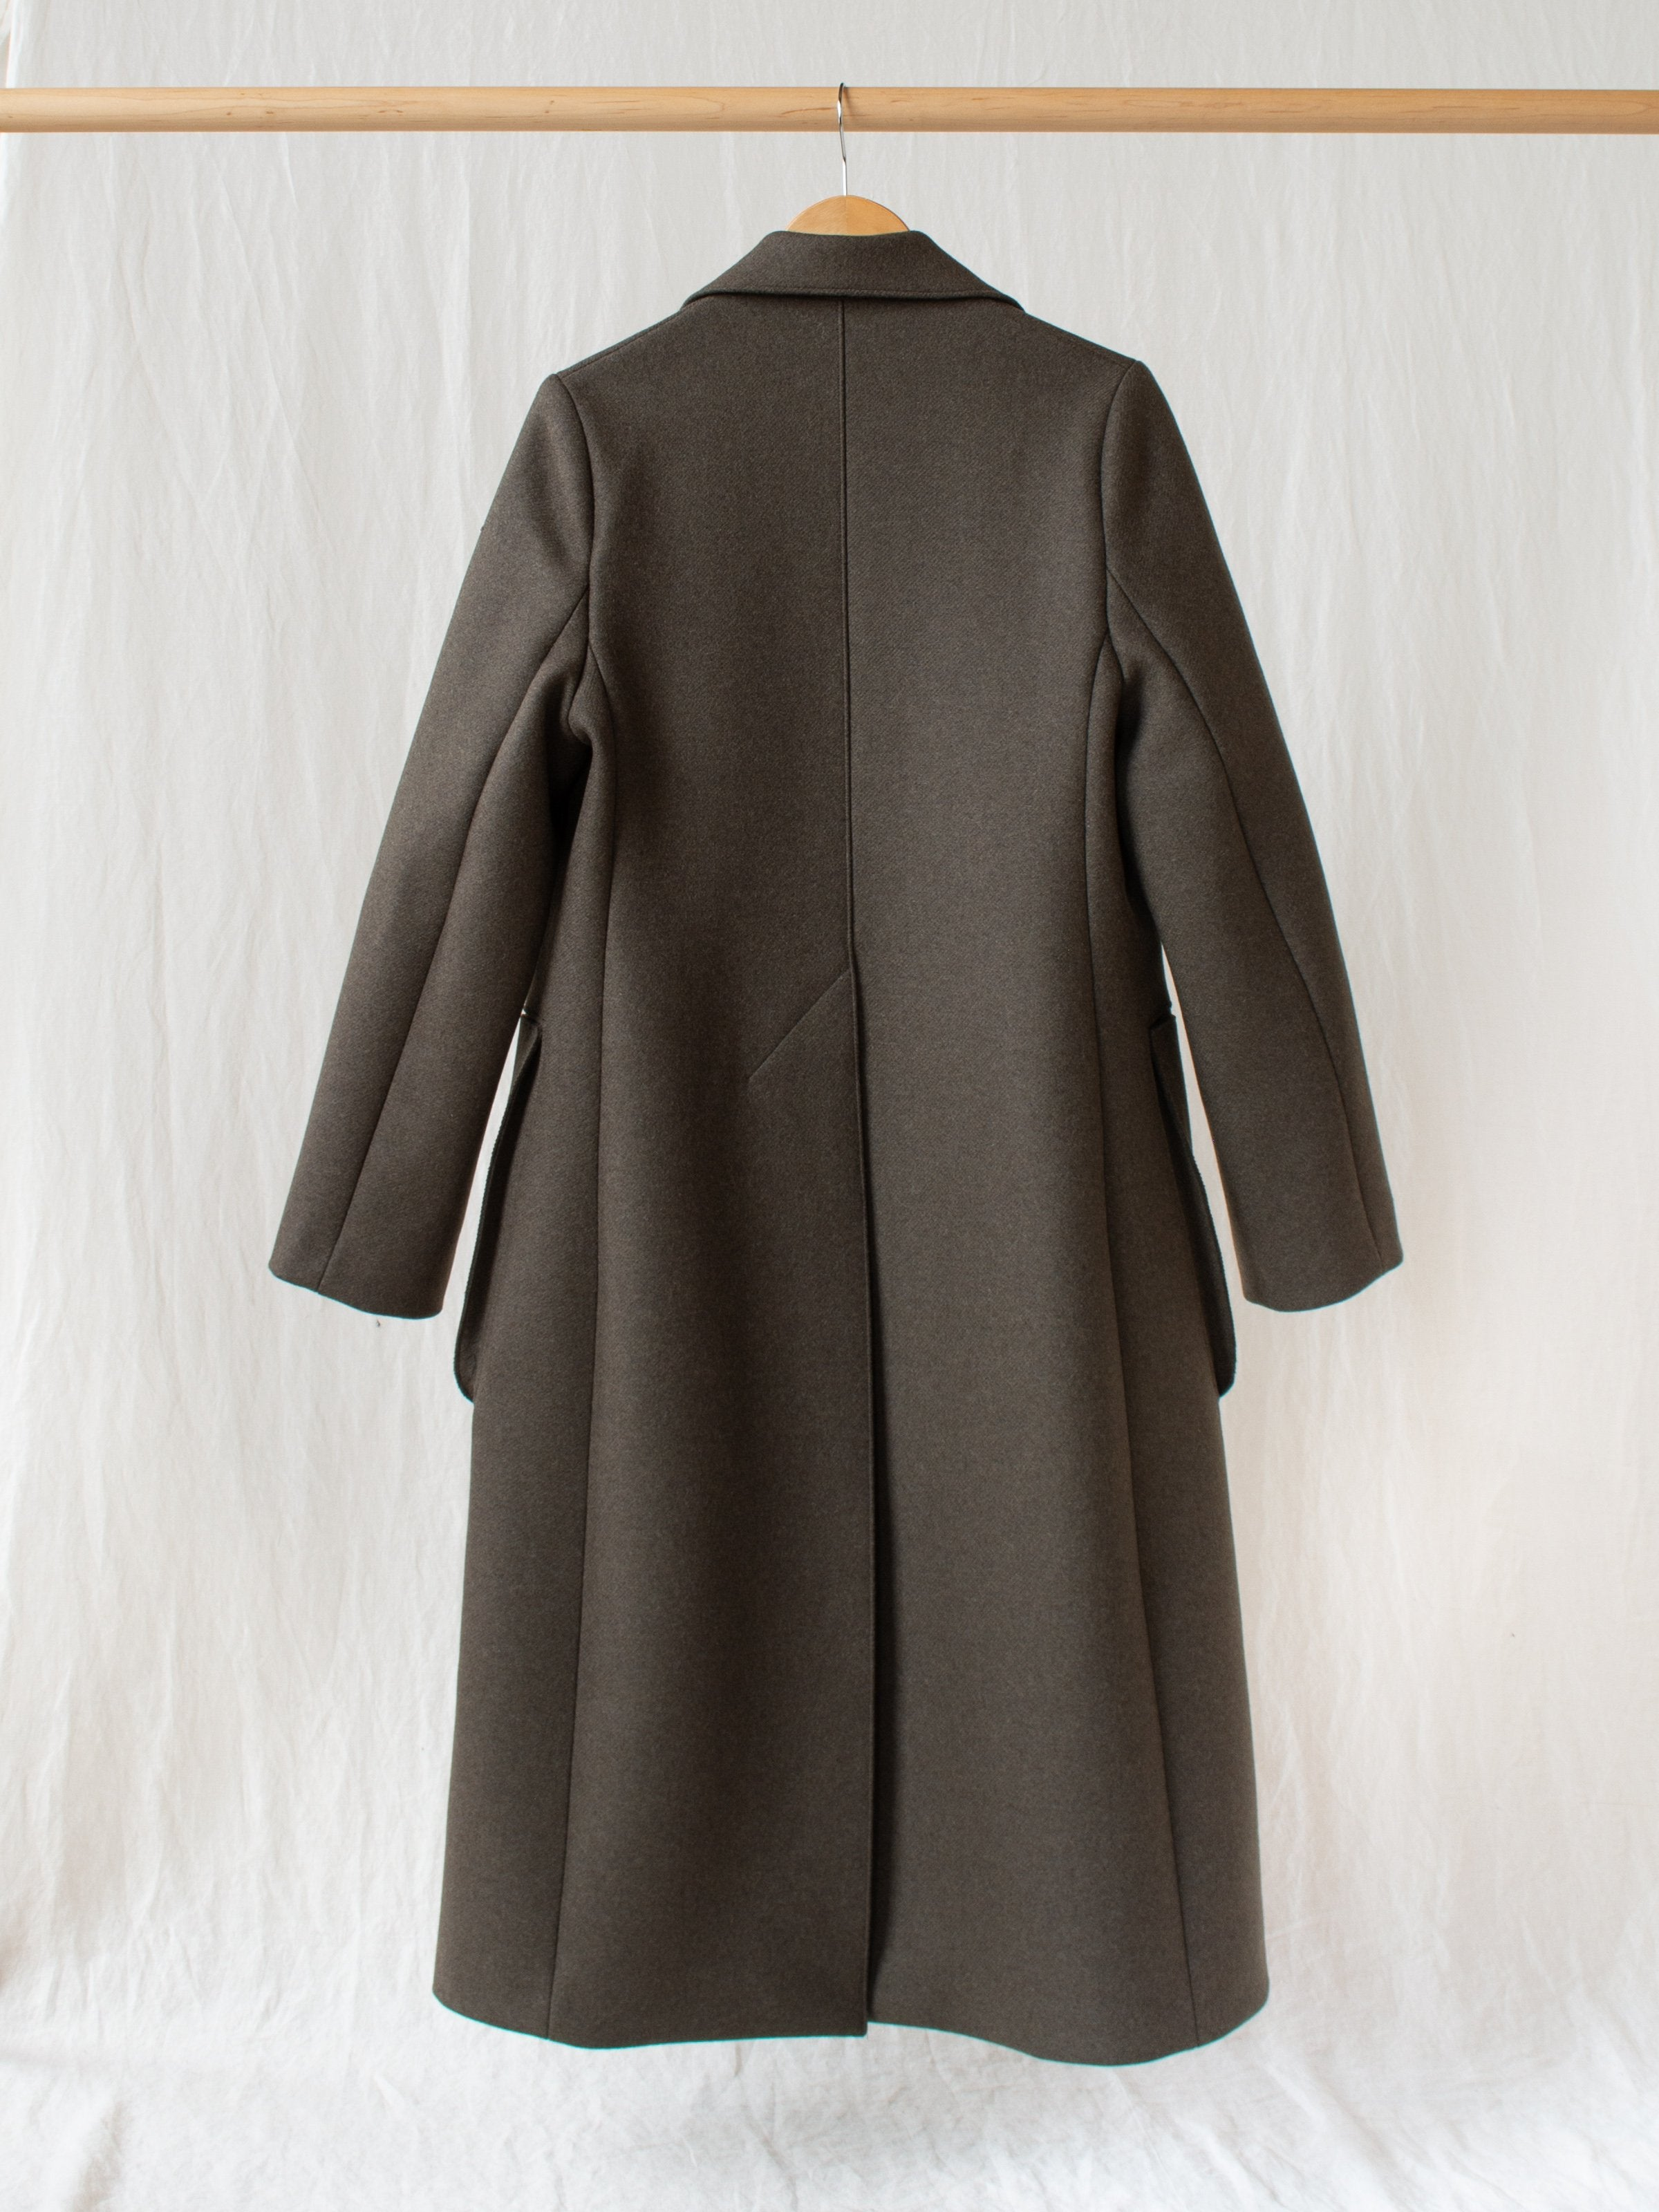 Ounce Coat in Double Faced Wool - Forest Green